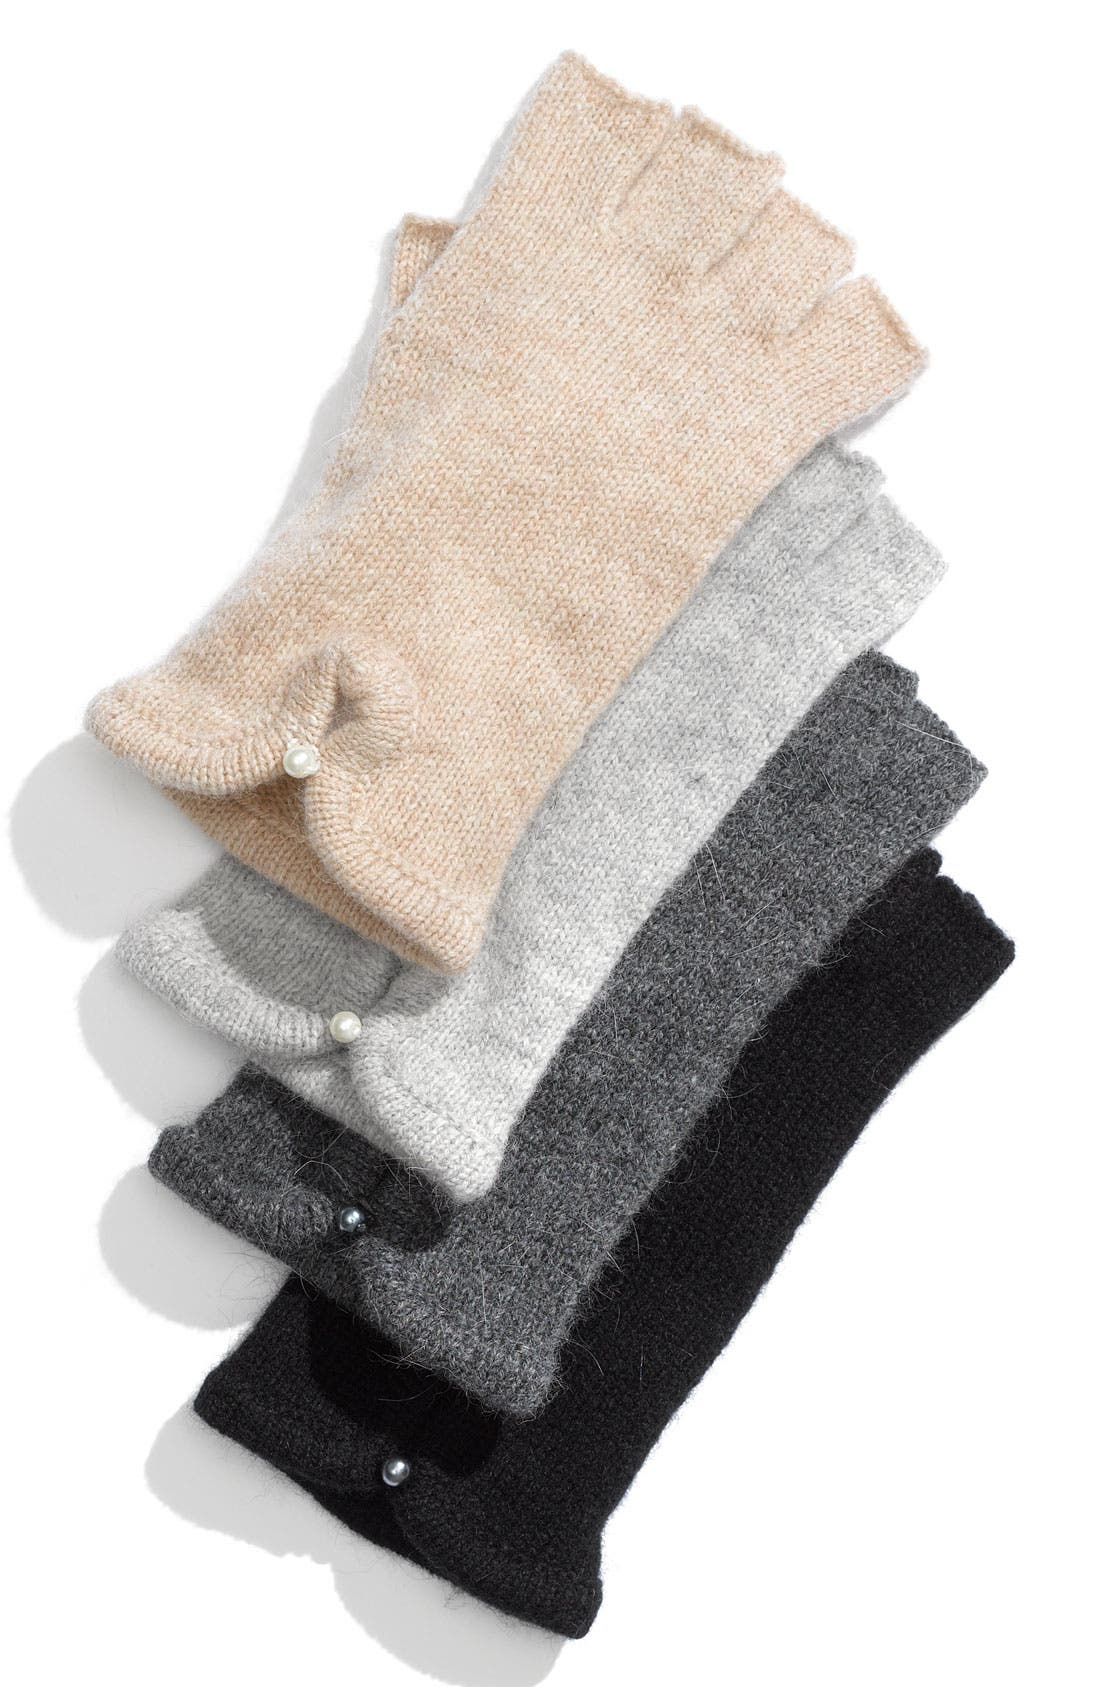 Alternate Image 1 Selected - Laundry by Shelli Segal Pearl Cuff Fingerless Gloves